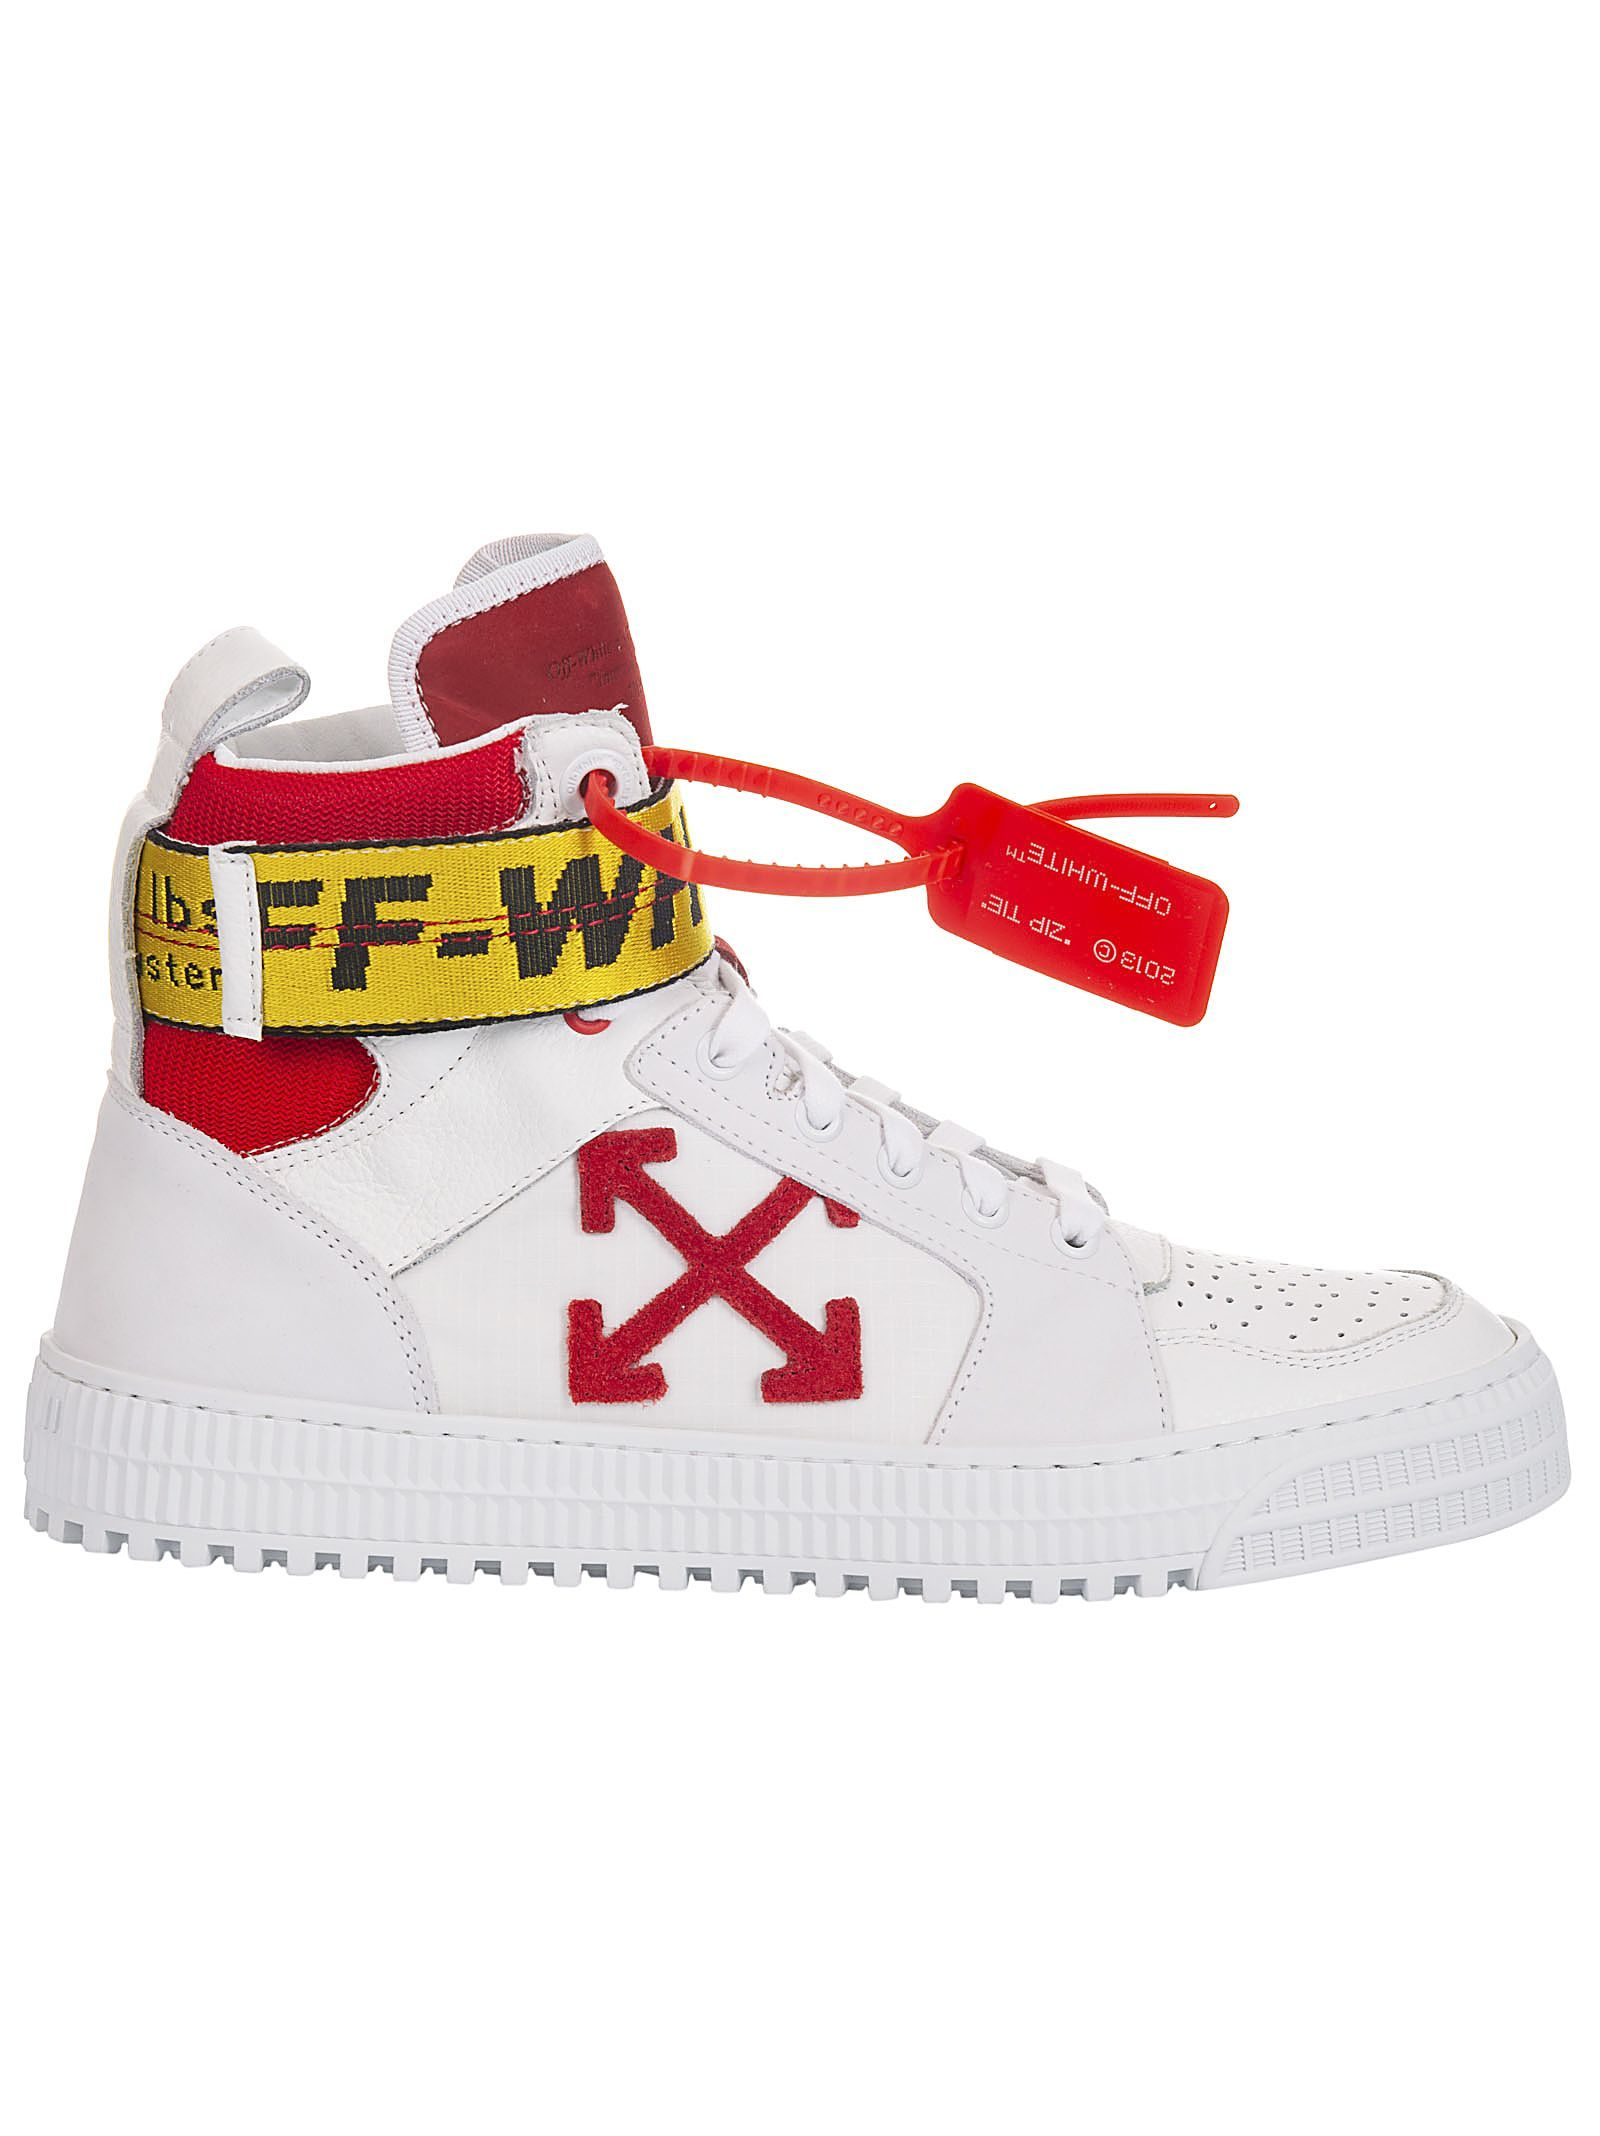 off white high top